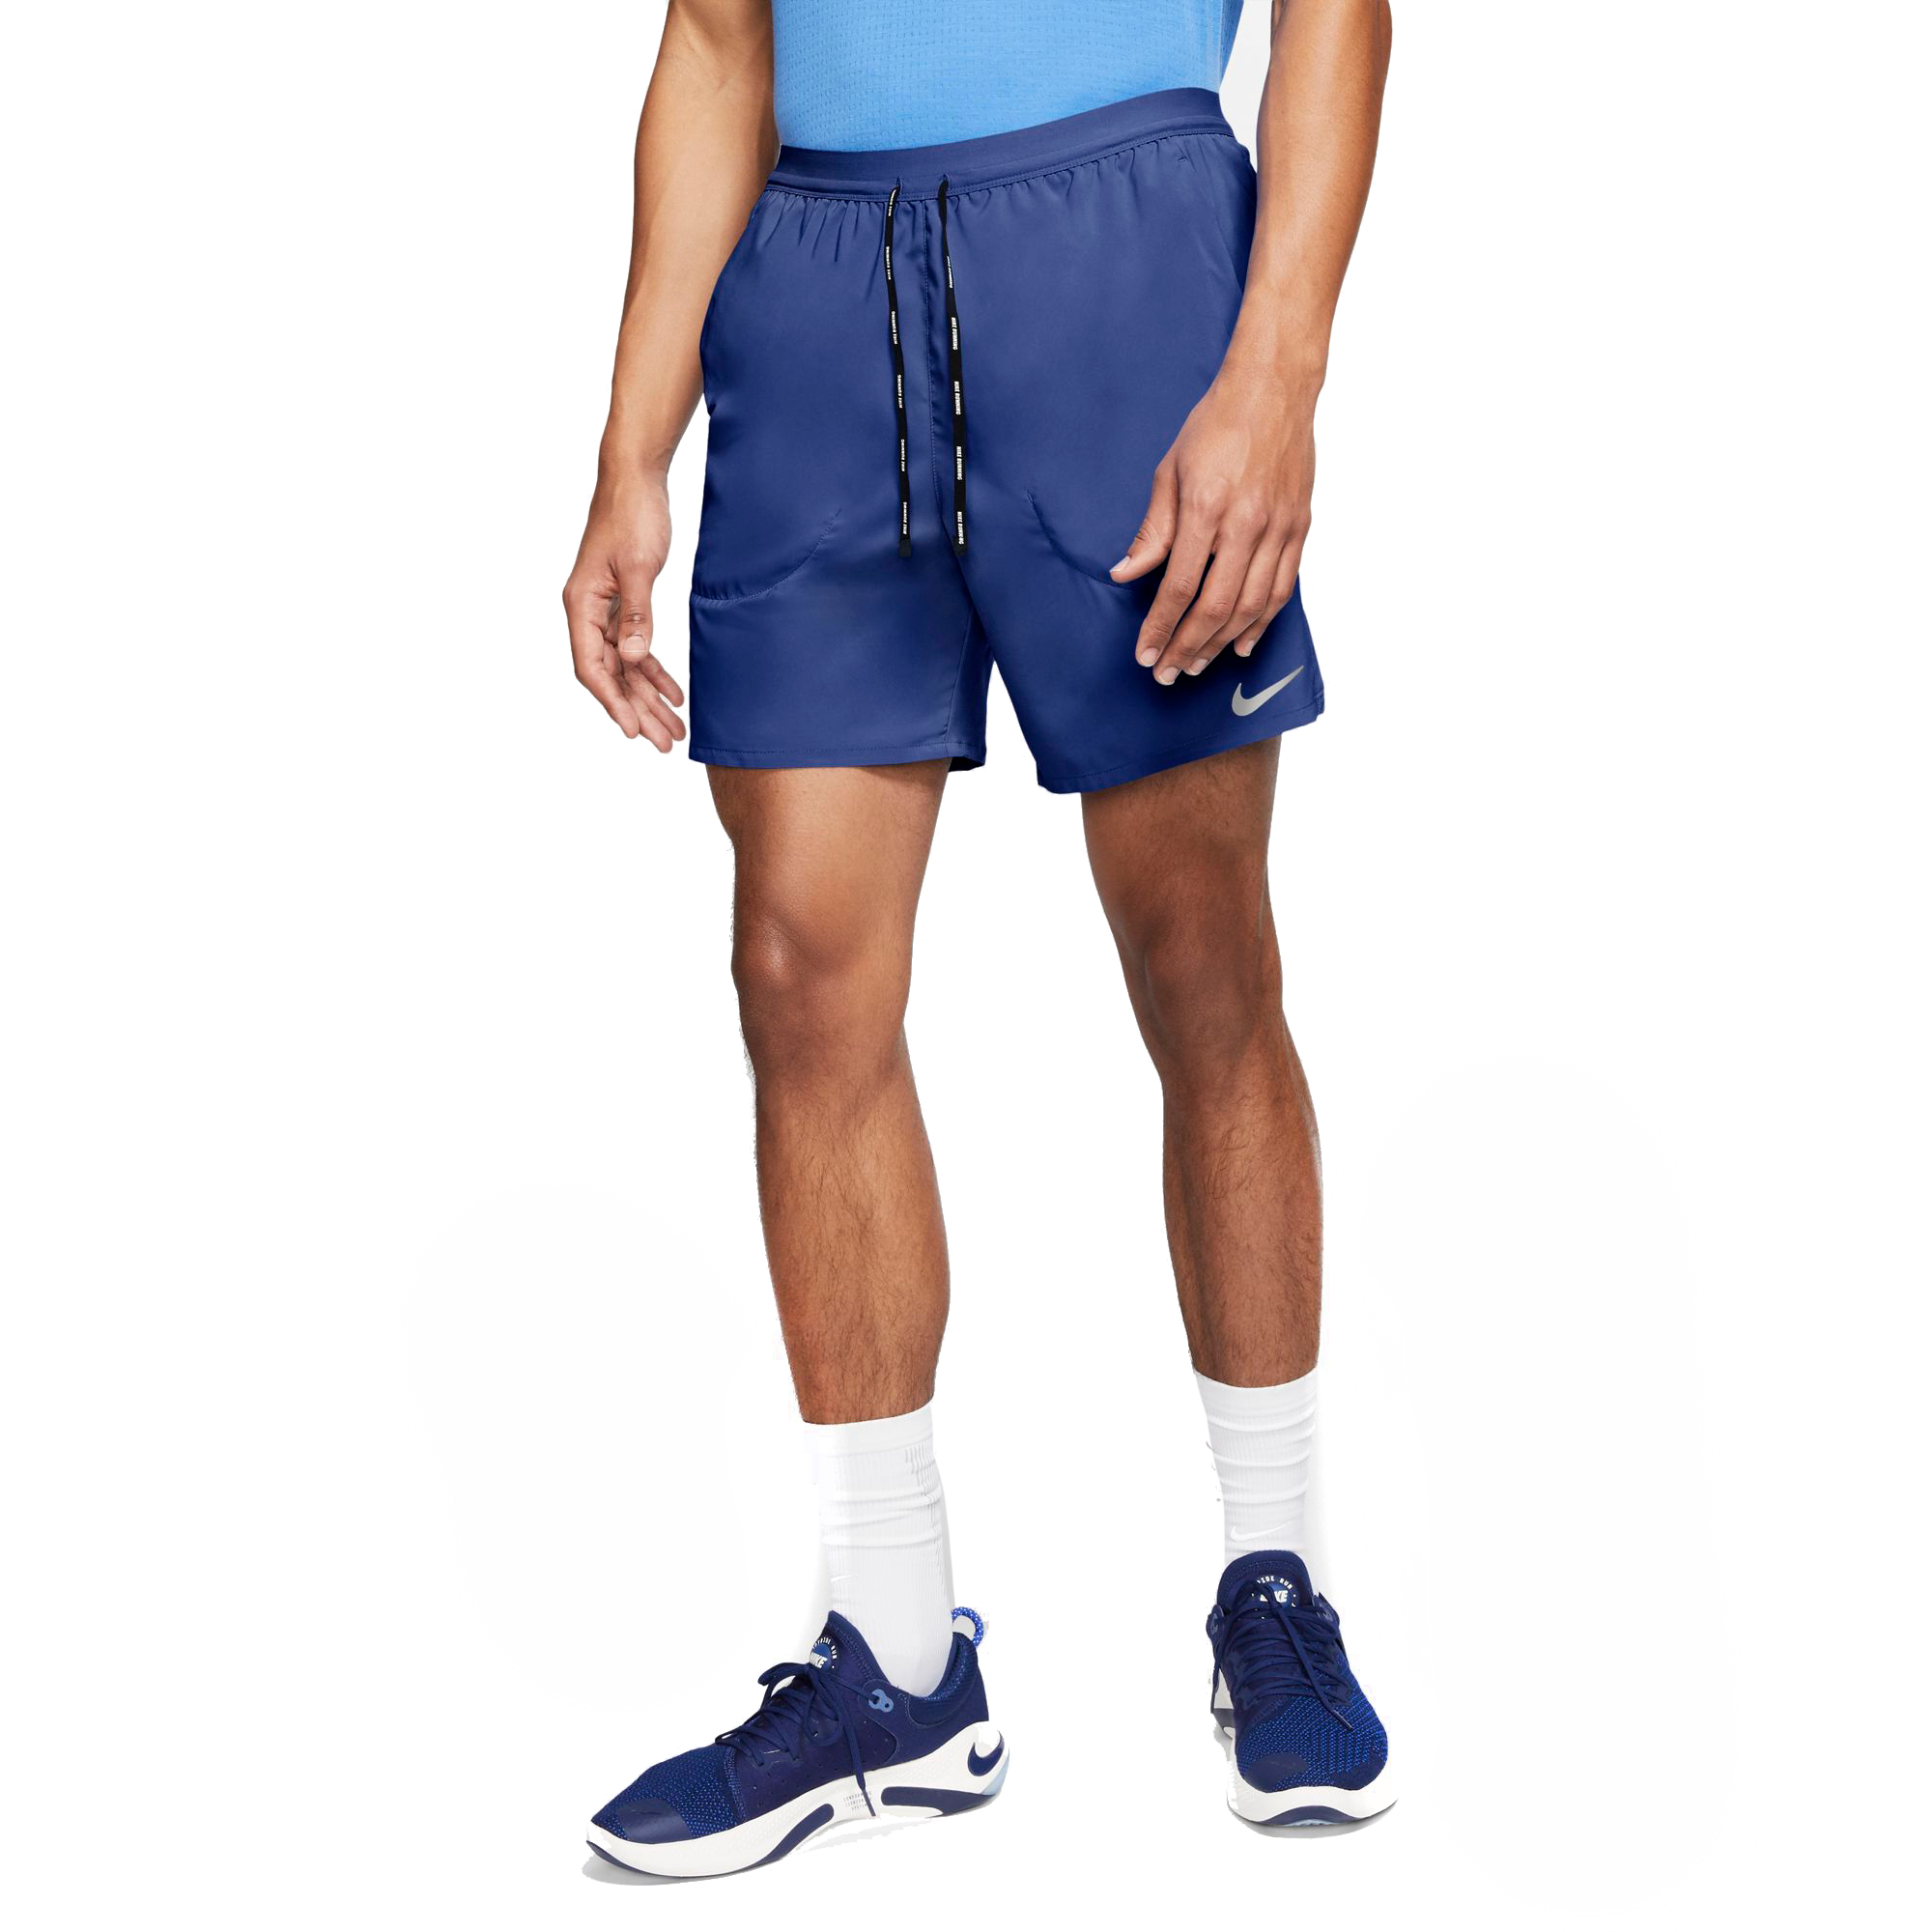 """Men's Nike Flex Stride 7"""" 2-In-1 Running Shorts - Color: Astronomy Blue/Royal Pulse - Size: M, Astronomy Blue/Royal Pulse, large, image 3"""